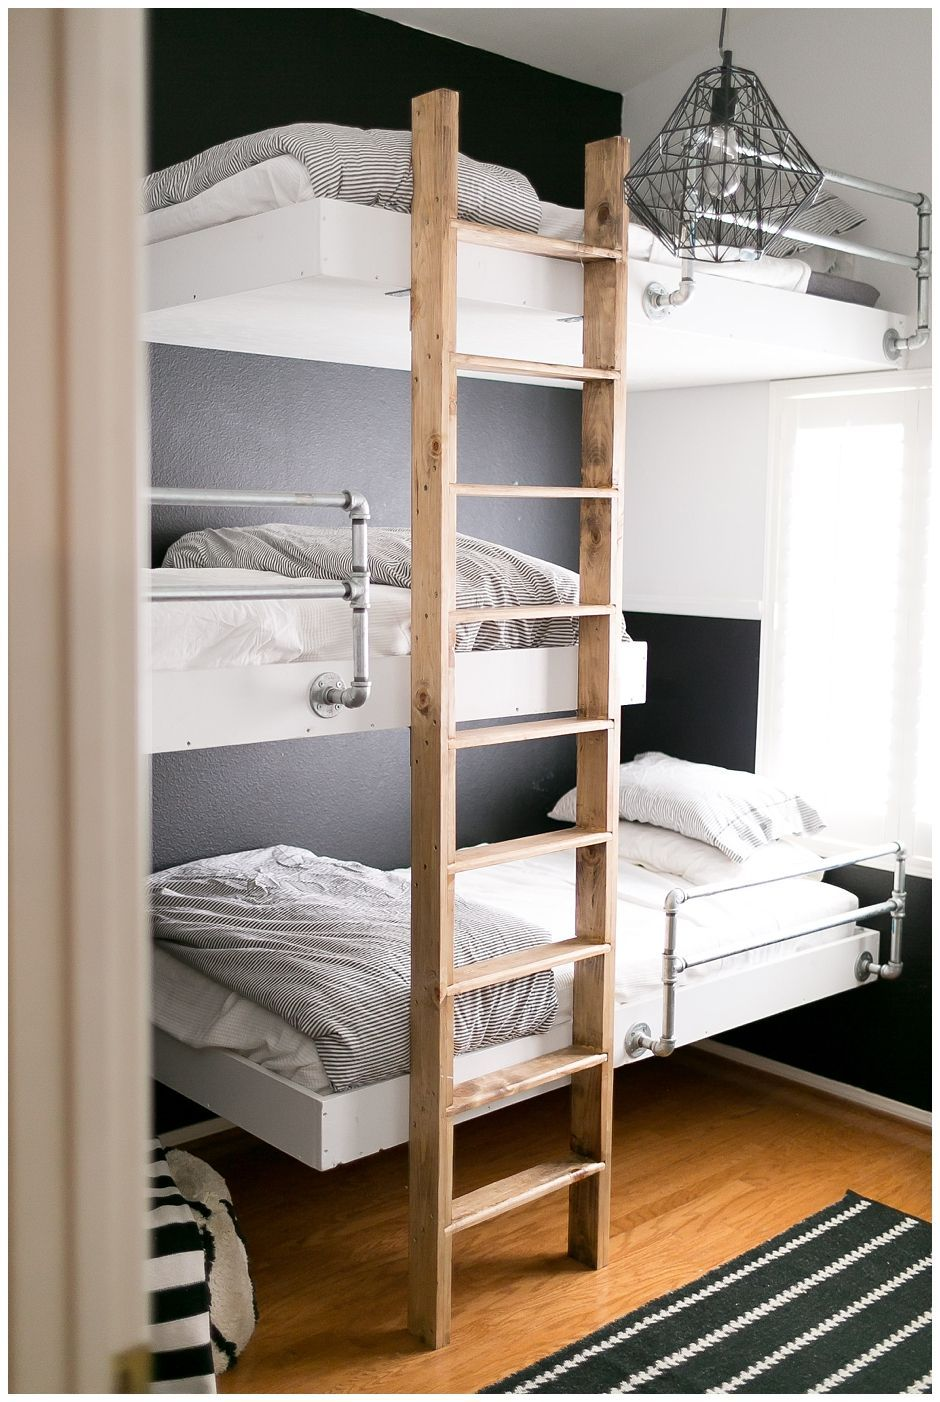 7 Nice Triple Bunk Beds Ideas For Your Childrens Bedroom Future